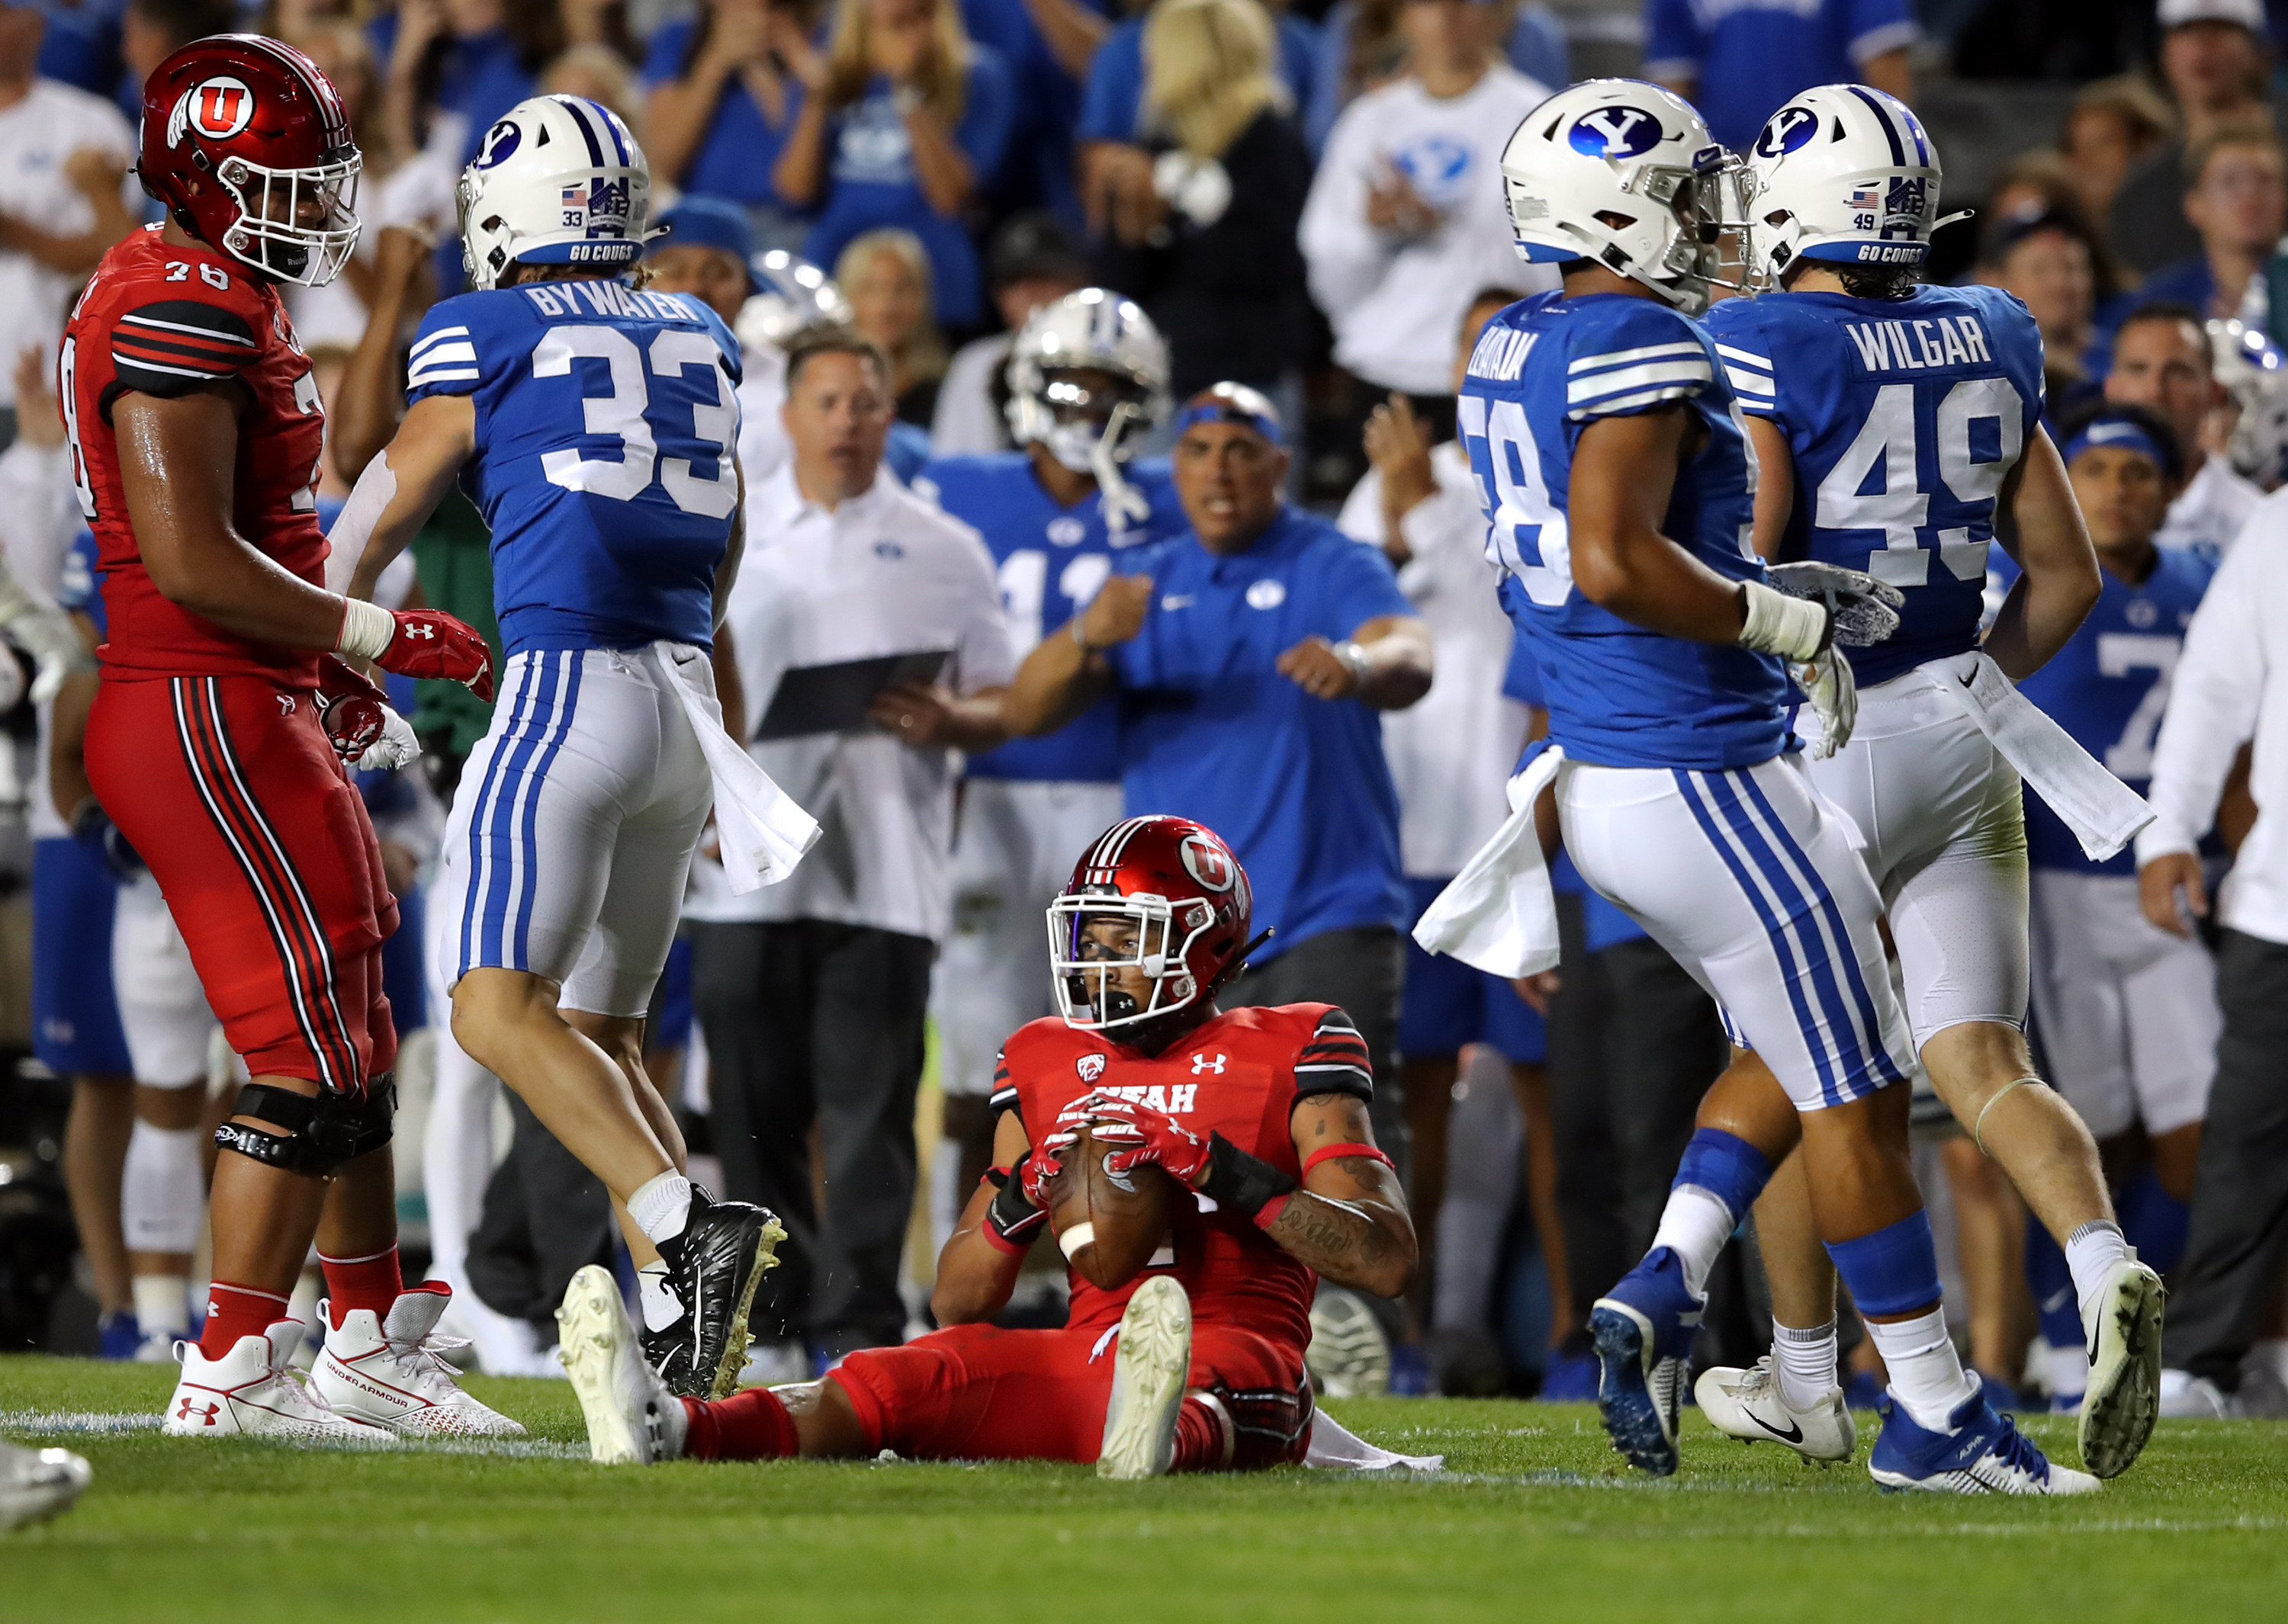 Utah running back Micah Bernard sits up after being tackled during game against BYU at LaVell Edwards Stadium in Provo, Utah.